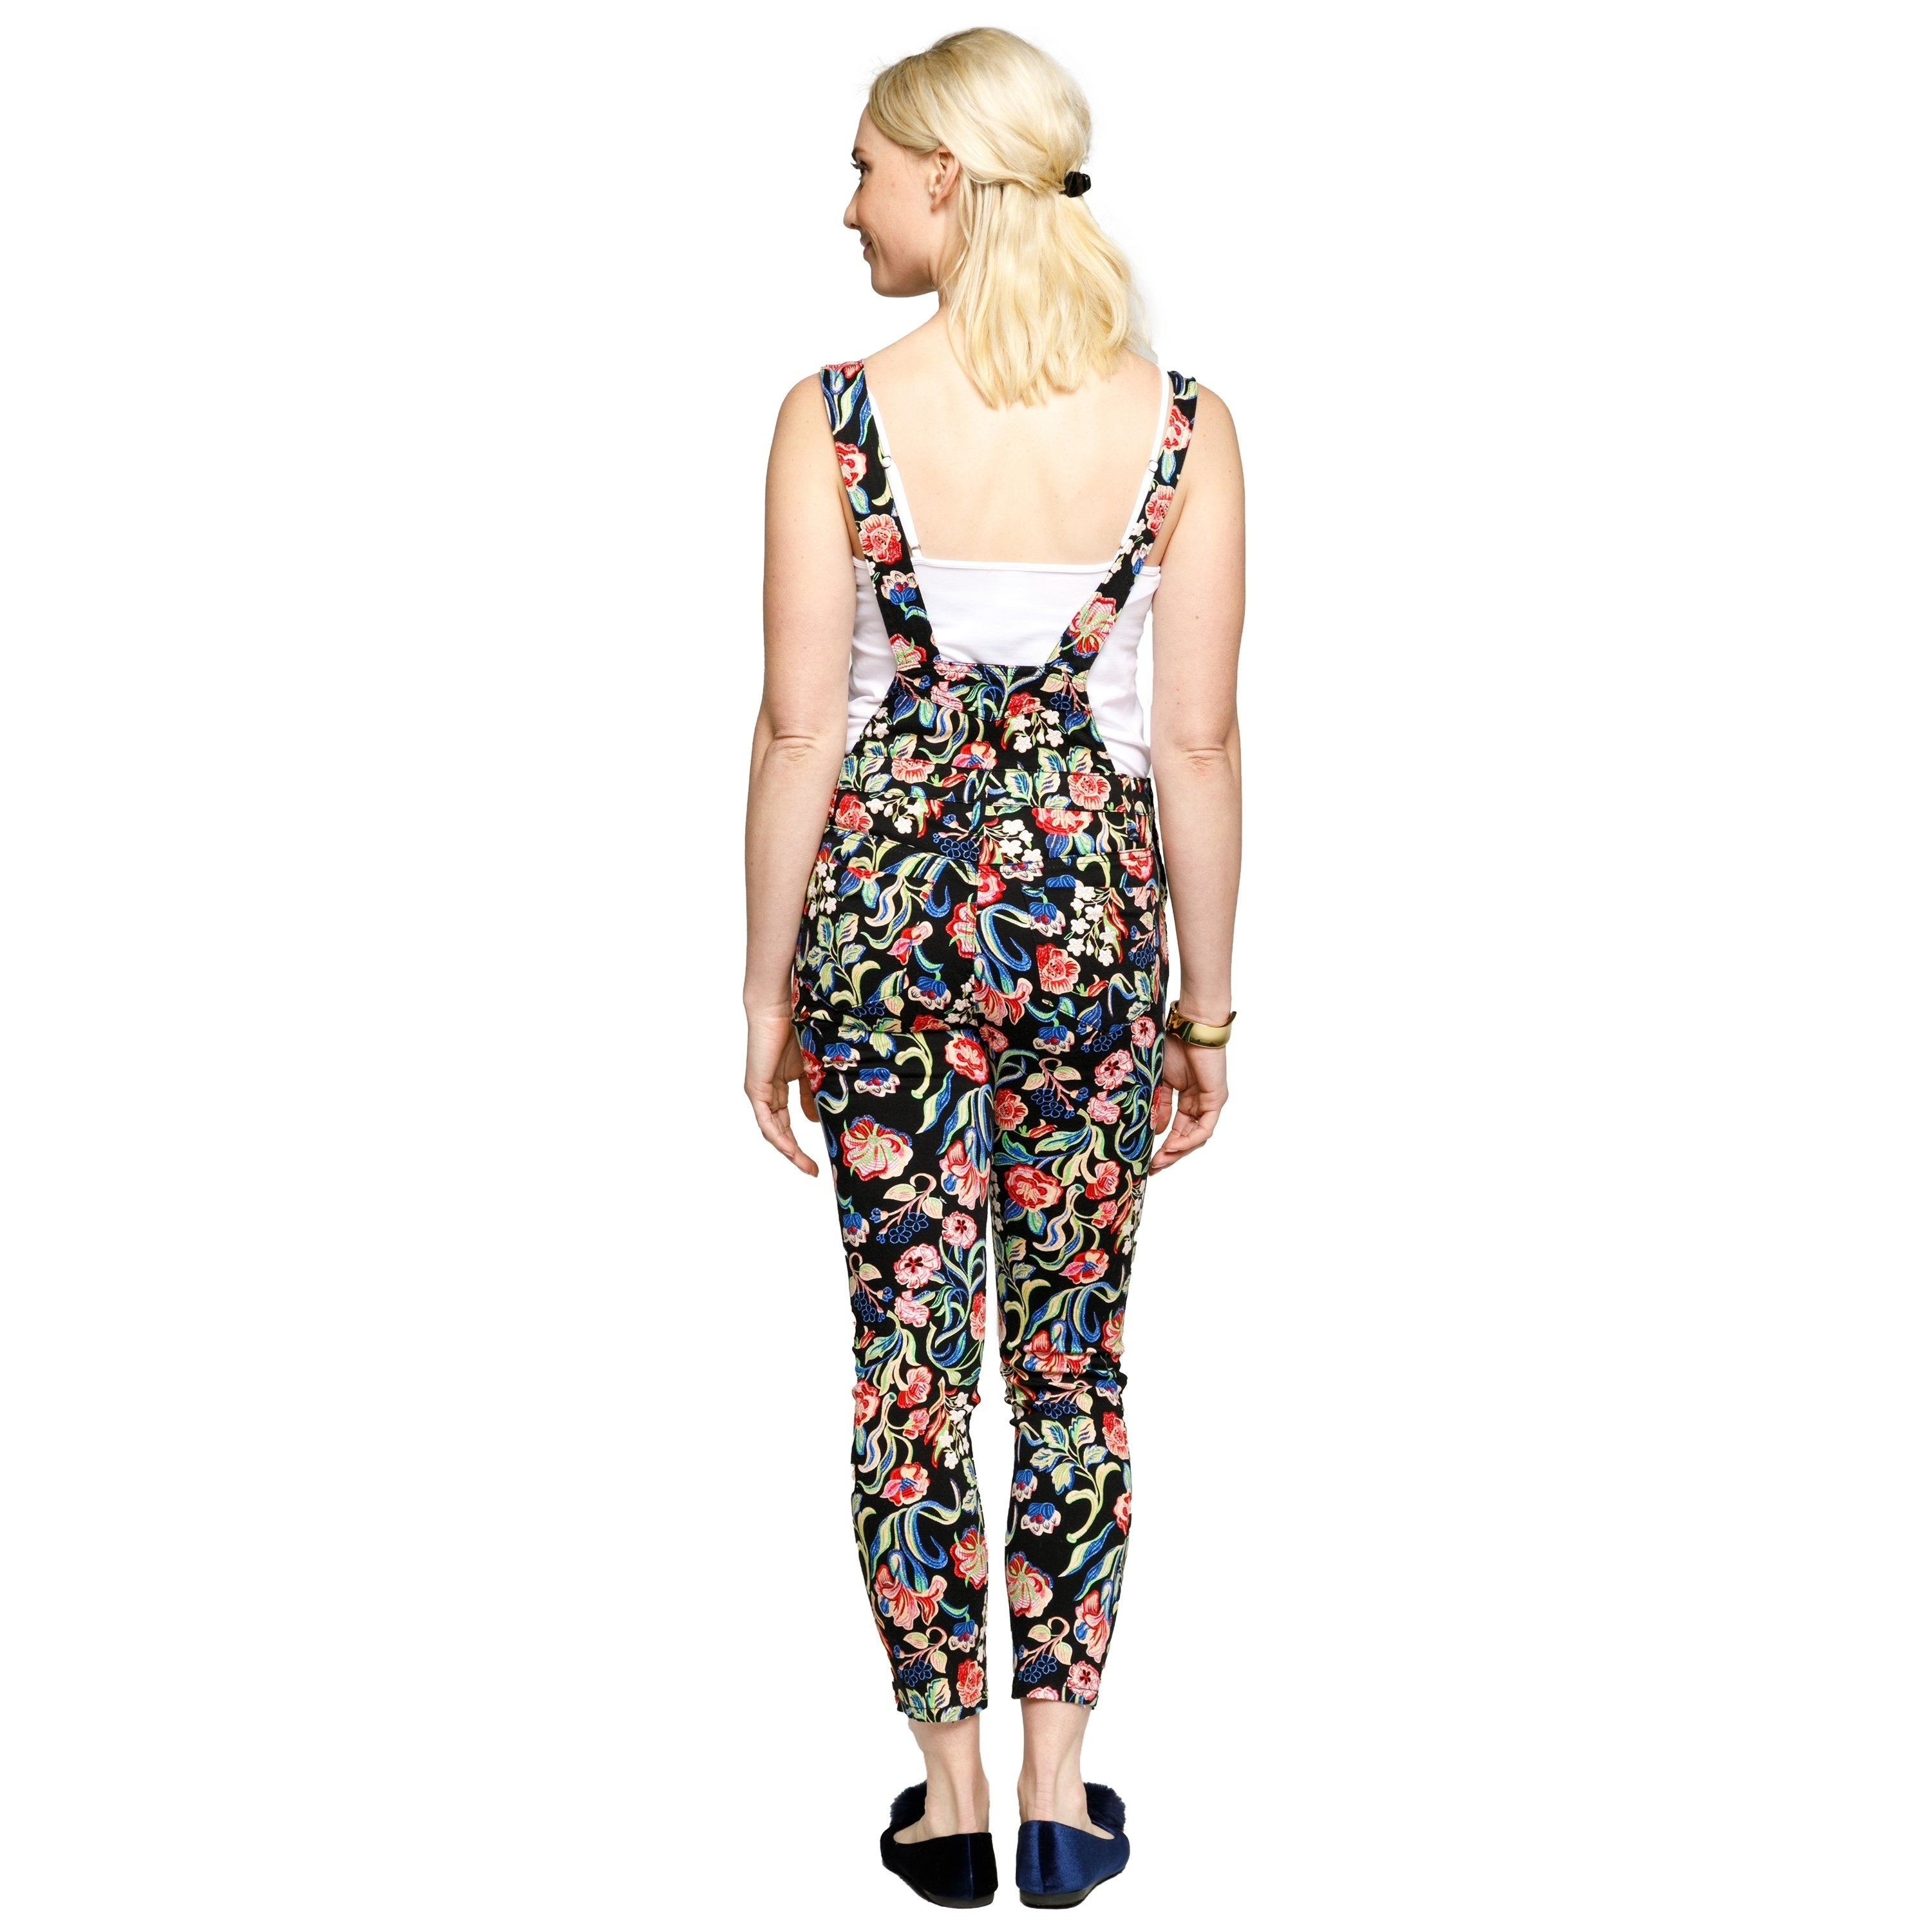 59cee9e1a27 Shop Xehar Womens Casual Floral Print Overalls Jumpsuits Playsuits - Free  Shipping Today - Overstock - 20168658